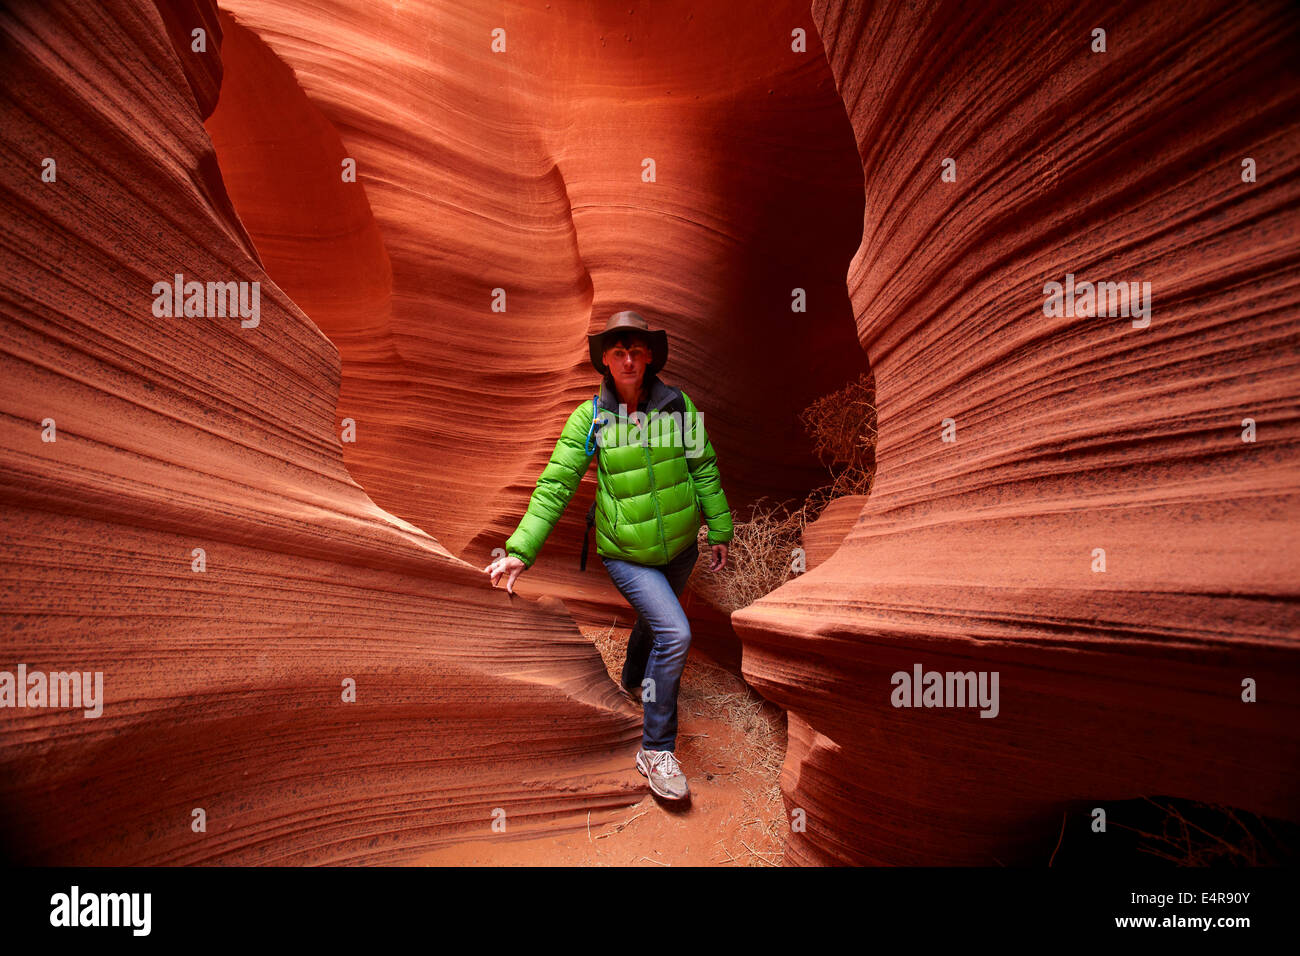 Tourist and eroded sandstone formations in Rattlesnake Canyon, near Page, Navajo Nation, Arizona, USA Stock Photo